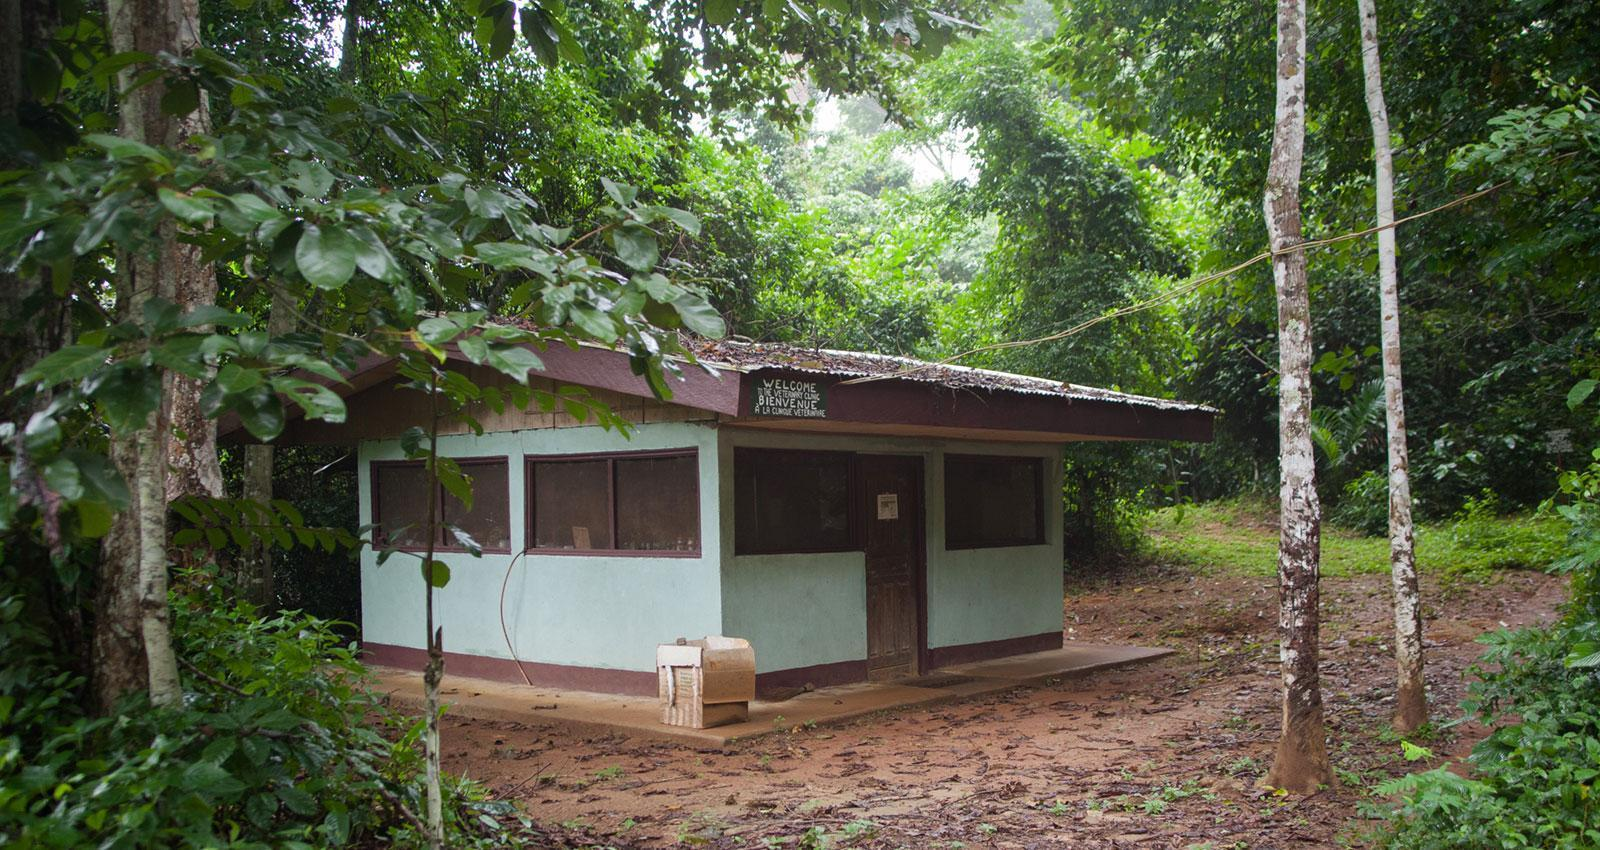 Main Building in Sanaga Yong Chimpanzee Rescue